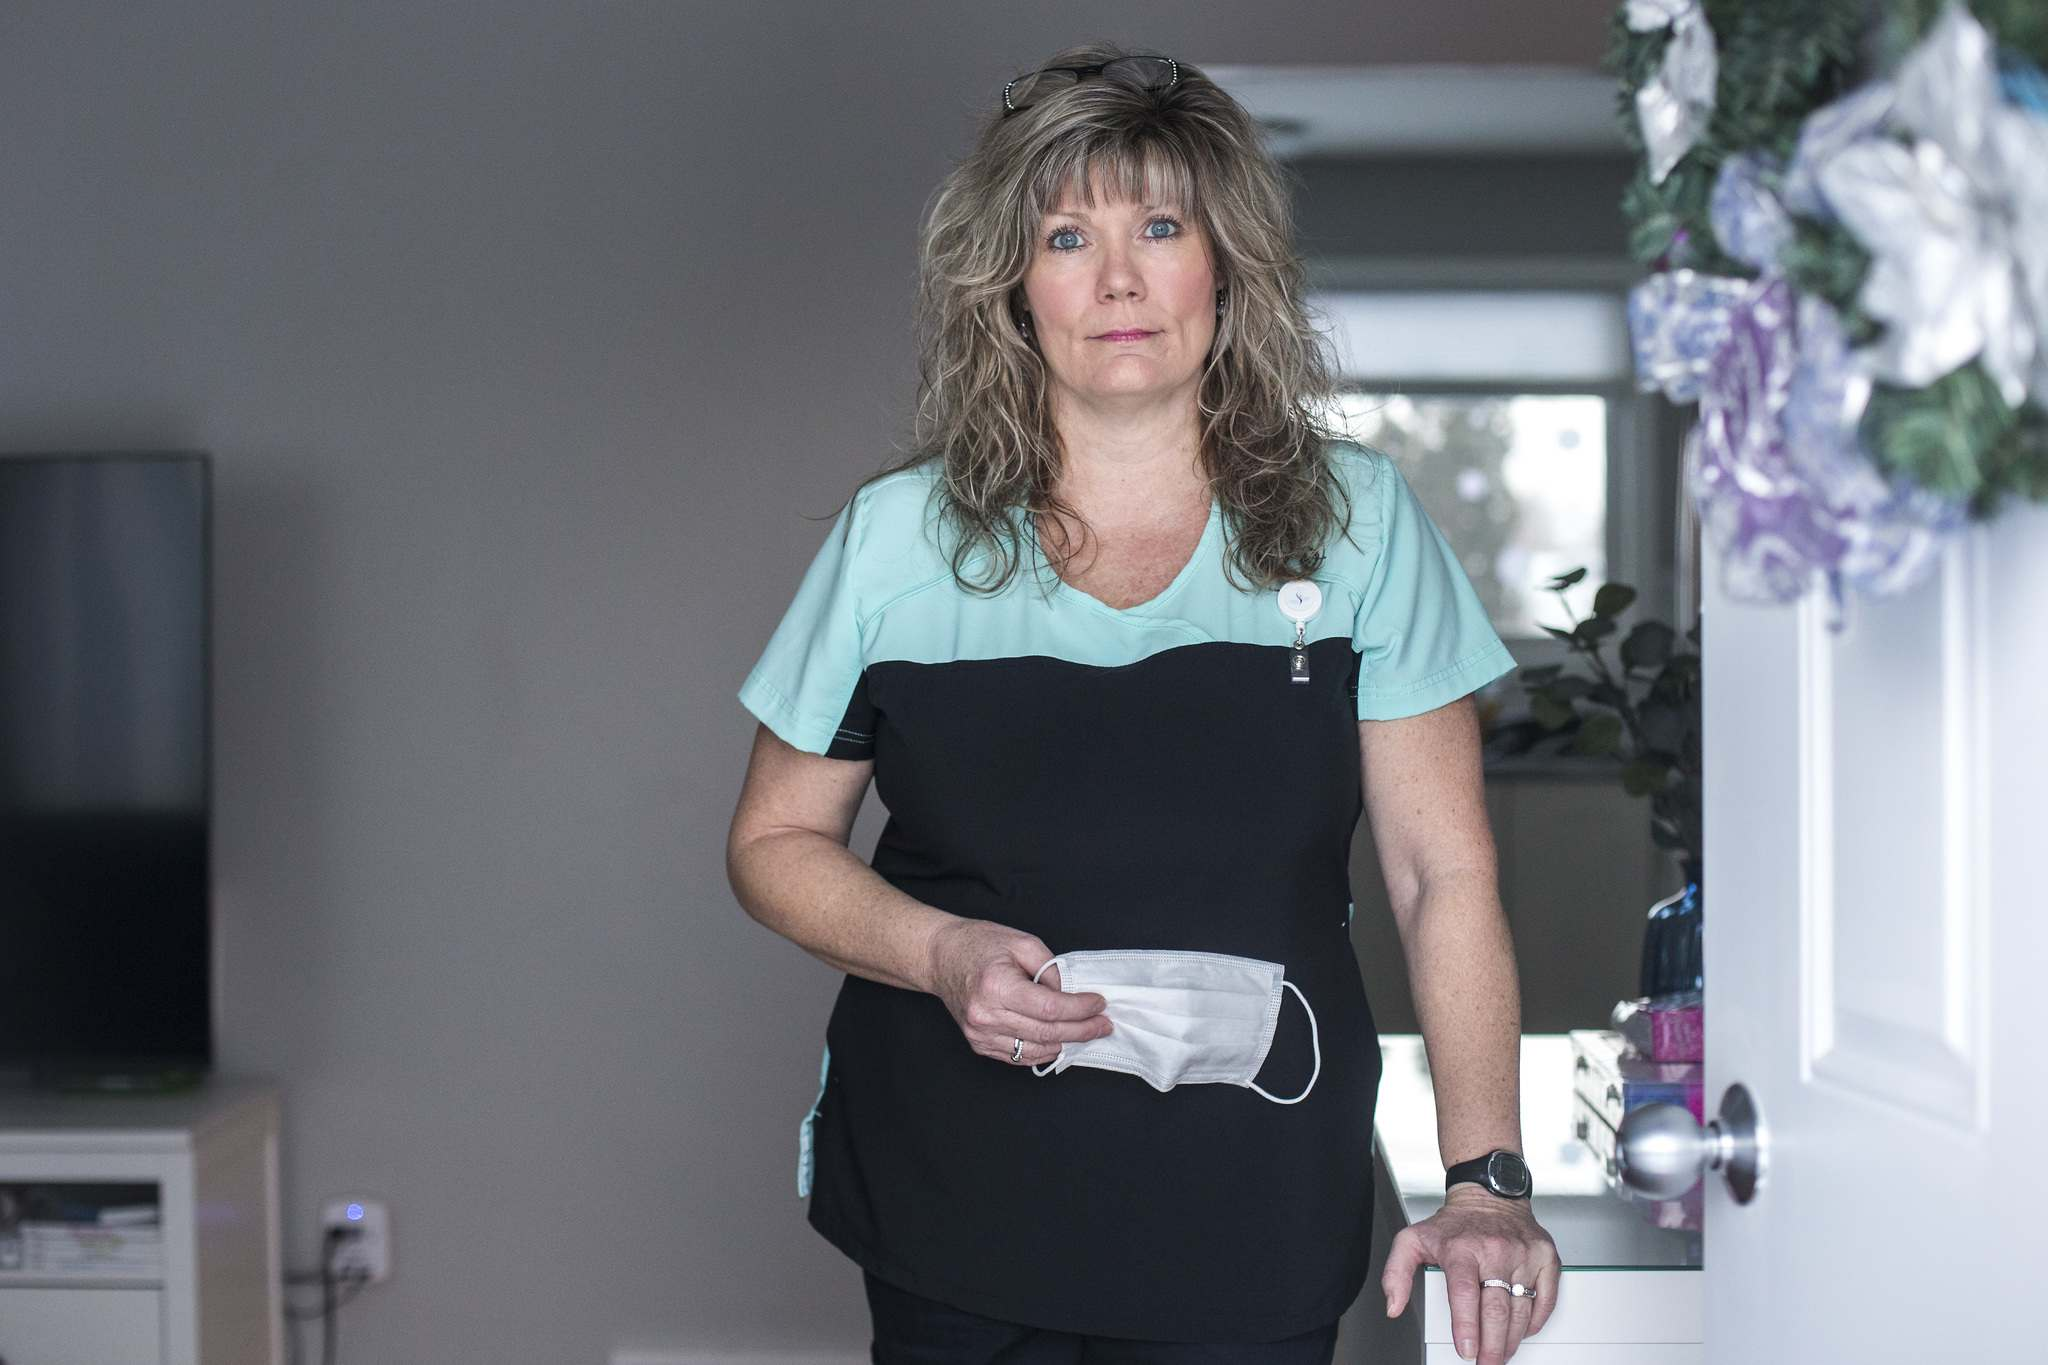 MIKAELA MACKENZIE / WINNIPEG FREE PRESS</p>  Glover was willing to work as a volunteer, but was told she couldn't, due to pandemic response protocols.